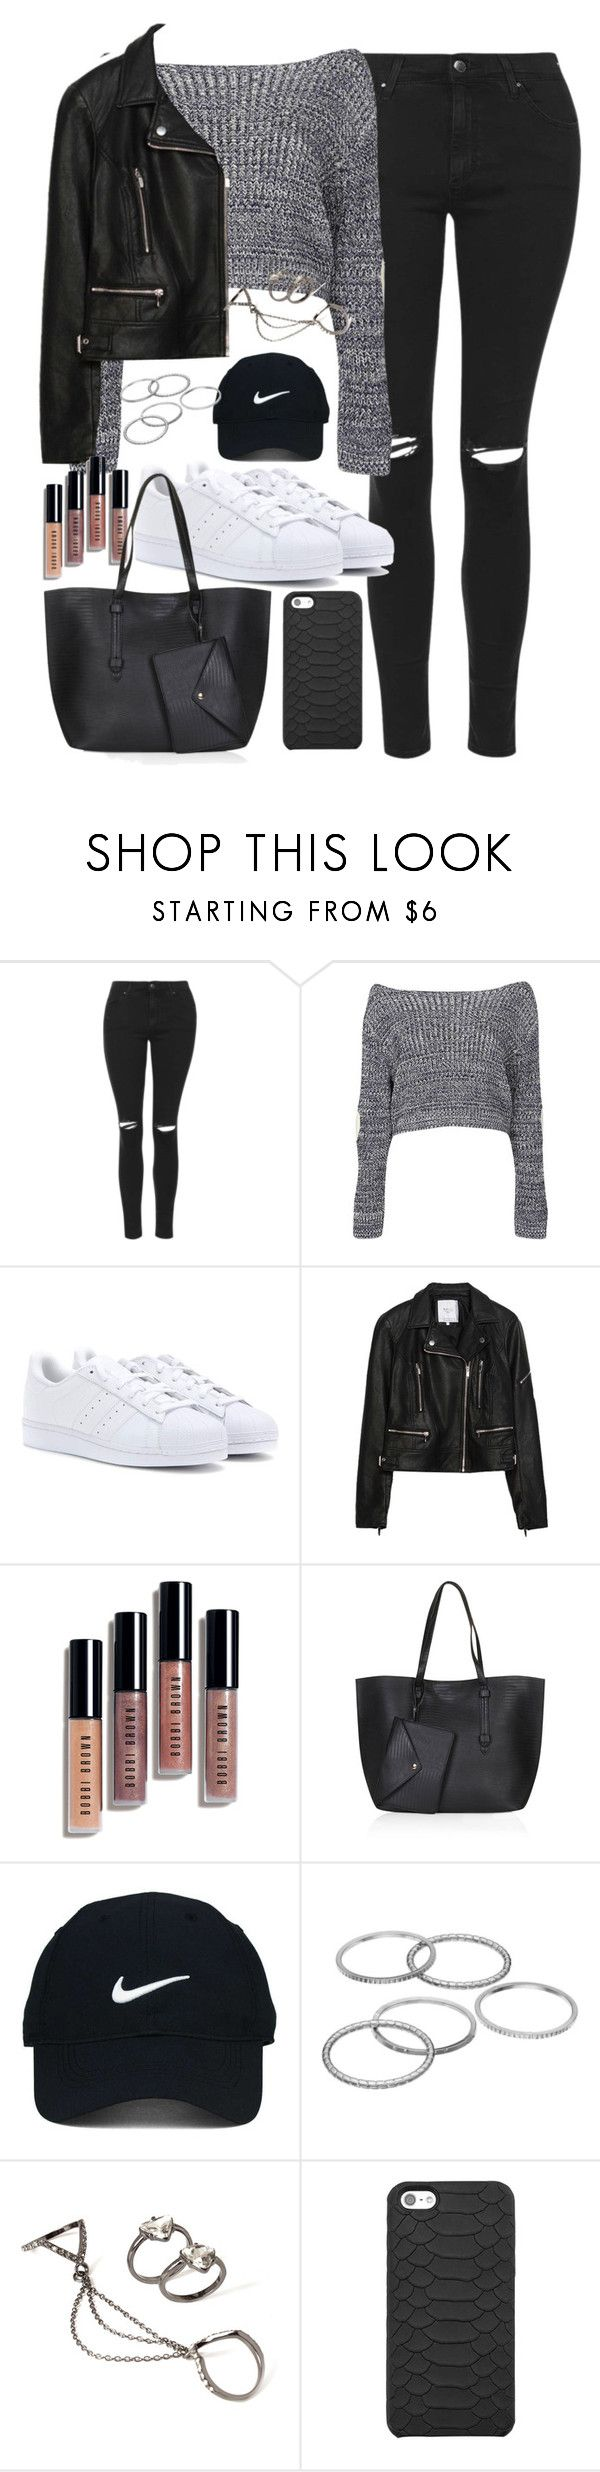 """Outfit for shopping in autumn"" by ferned ❤ liked on Polyvore featuring Topshop, Boohoo, adidas Originals, Zara, Bobbi Brown Cosmetics, Nike Golf, Apt. 9, Forever 21 and GiGi New York"